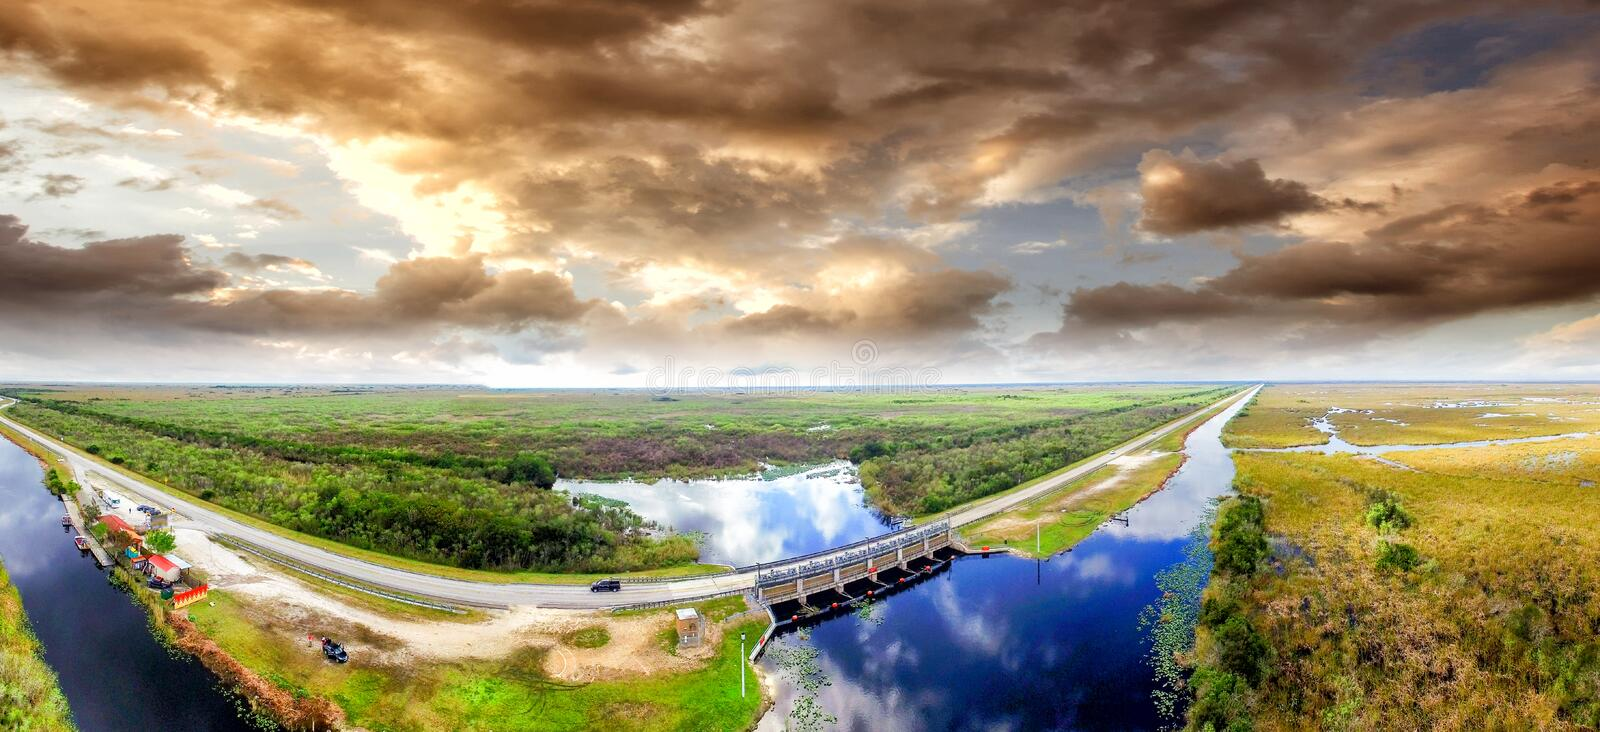 Amazing aerial view of Everglades National Park, Florida.  stock photos